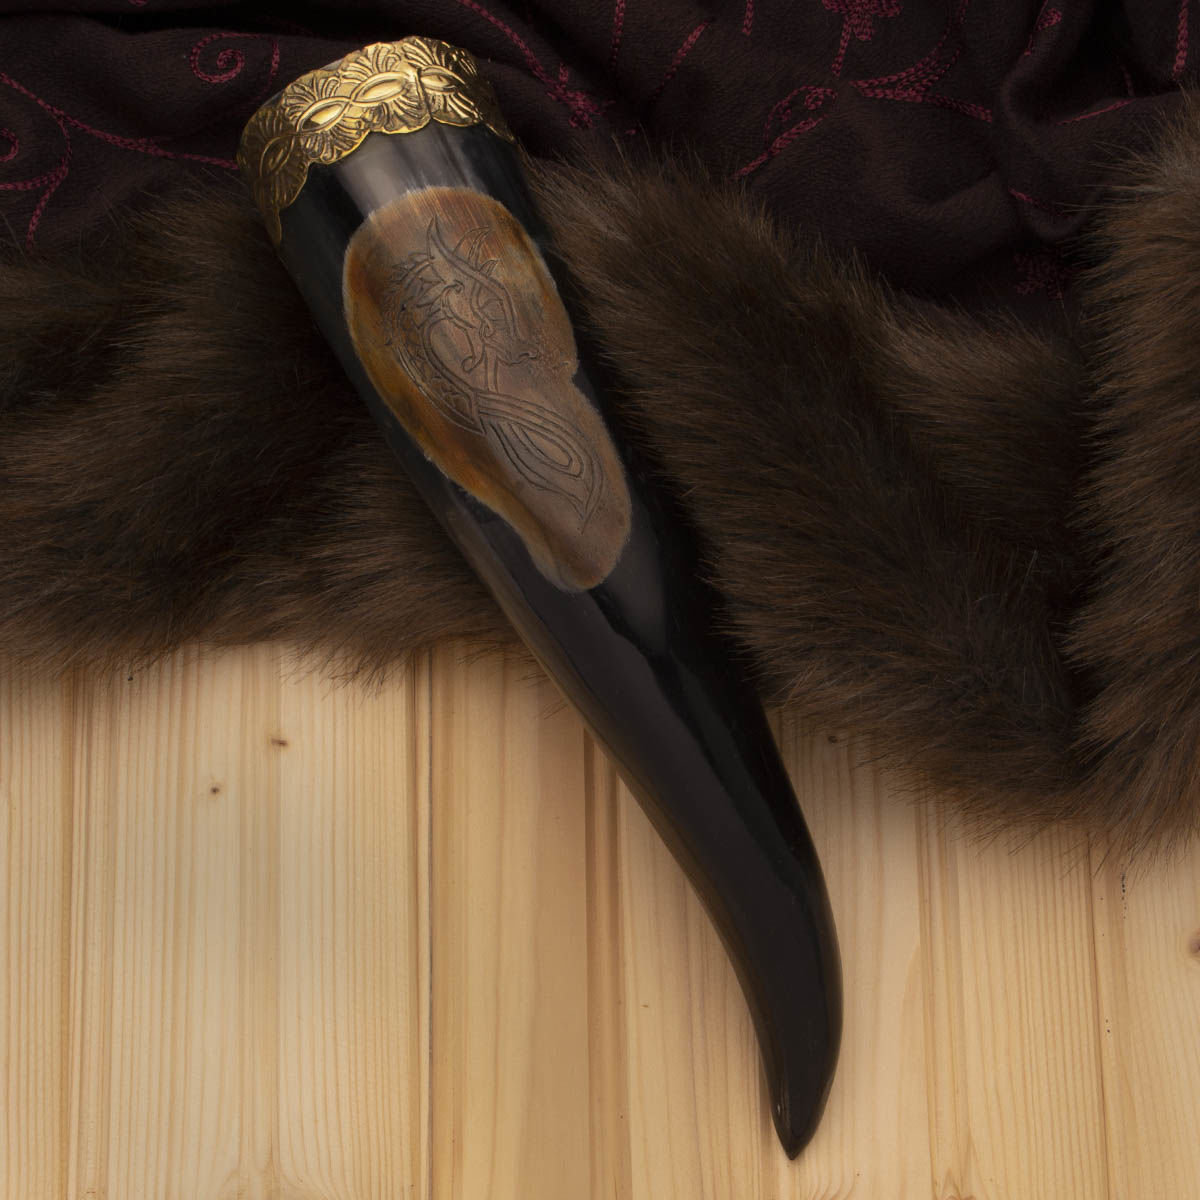 Drinking Horn engraved with famous Viking Dragon Head is fully functional but slightly de-laminated at the mouth